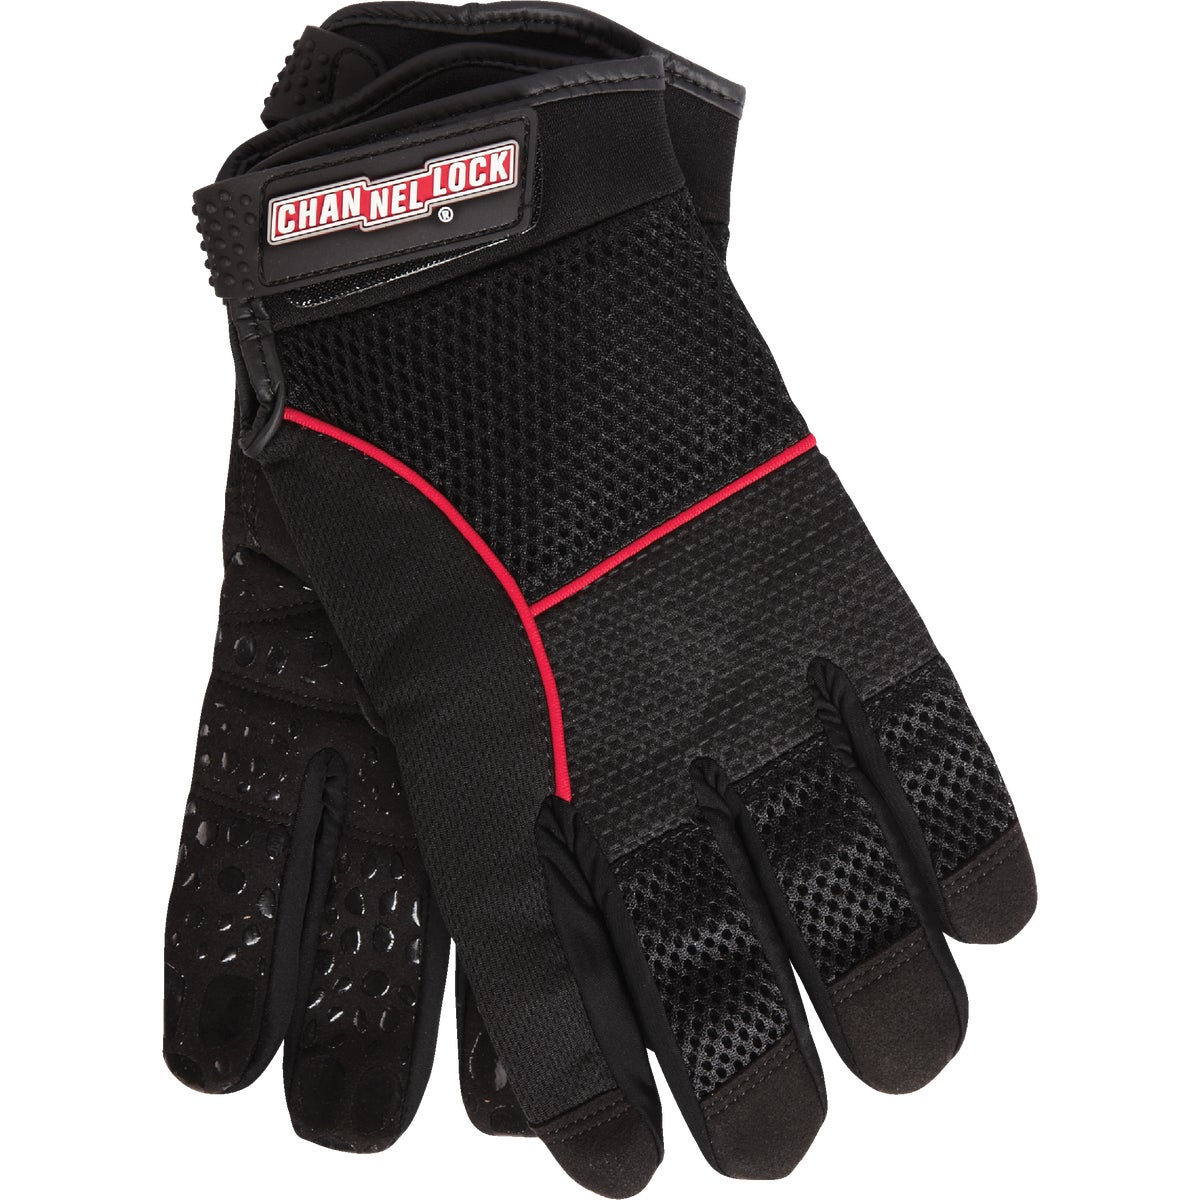 MENS LRG PRO GRIP GLOVE - 760522 by Channellock®